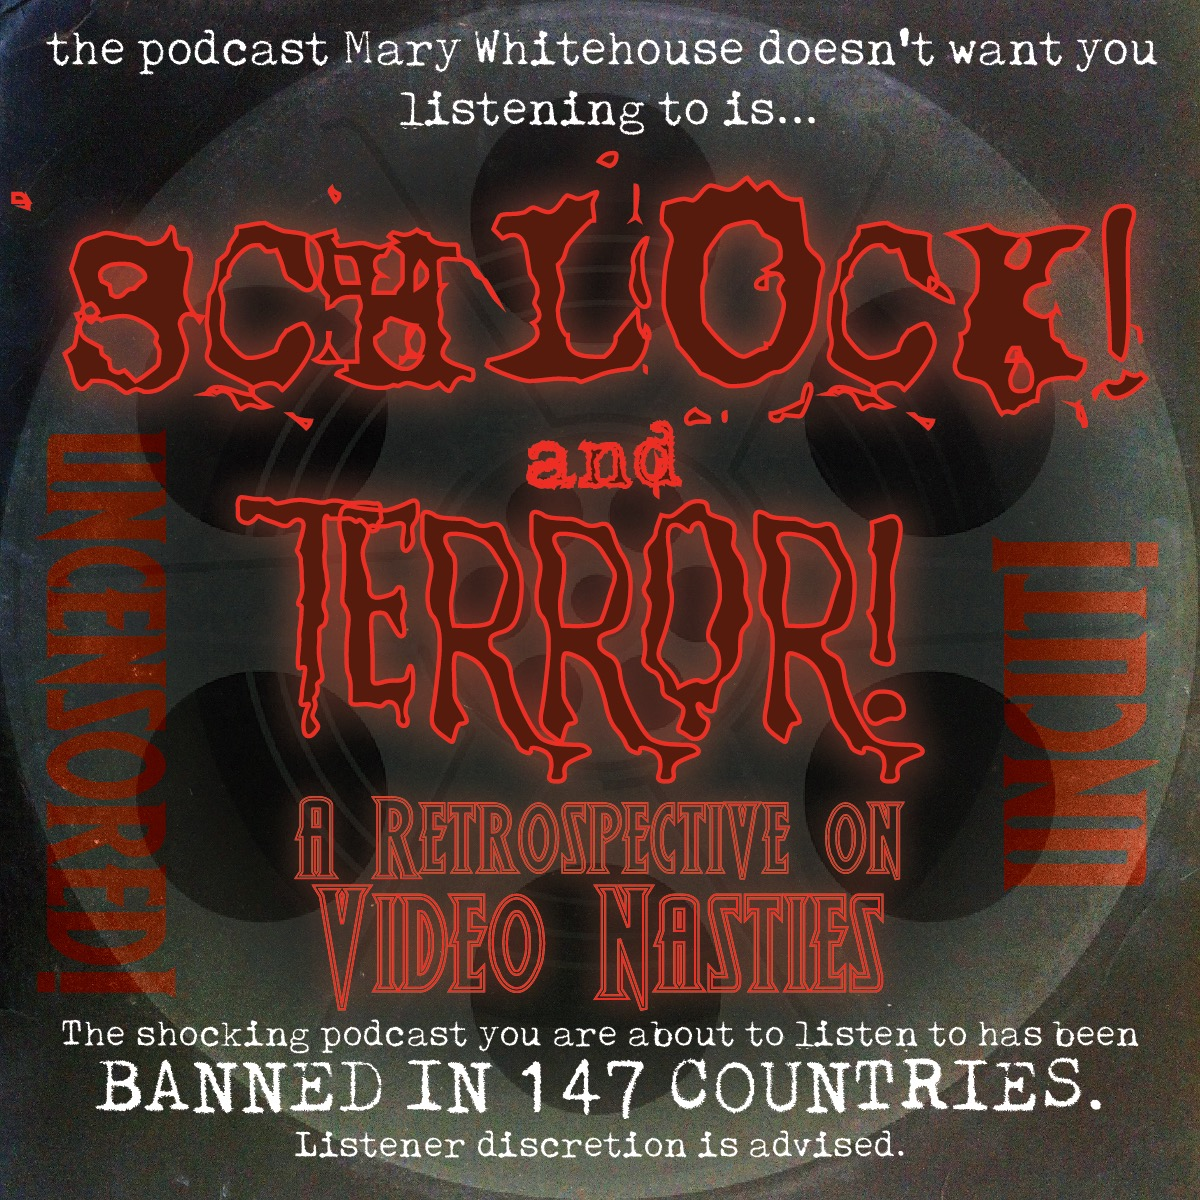 Schlock & Terror: A Retrospective of Video Nasties – A Bay of Blood